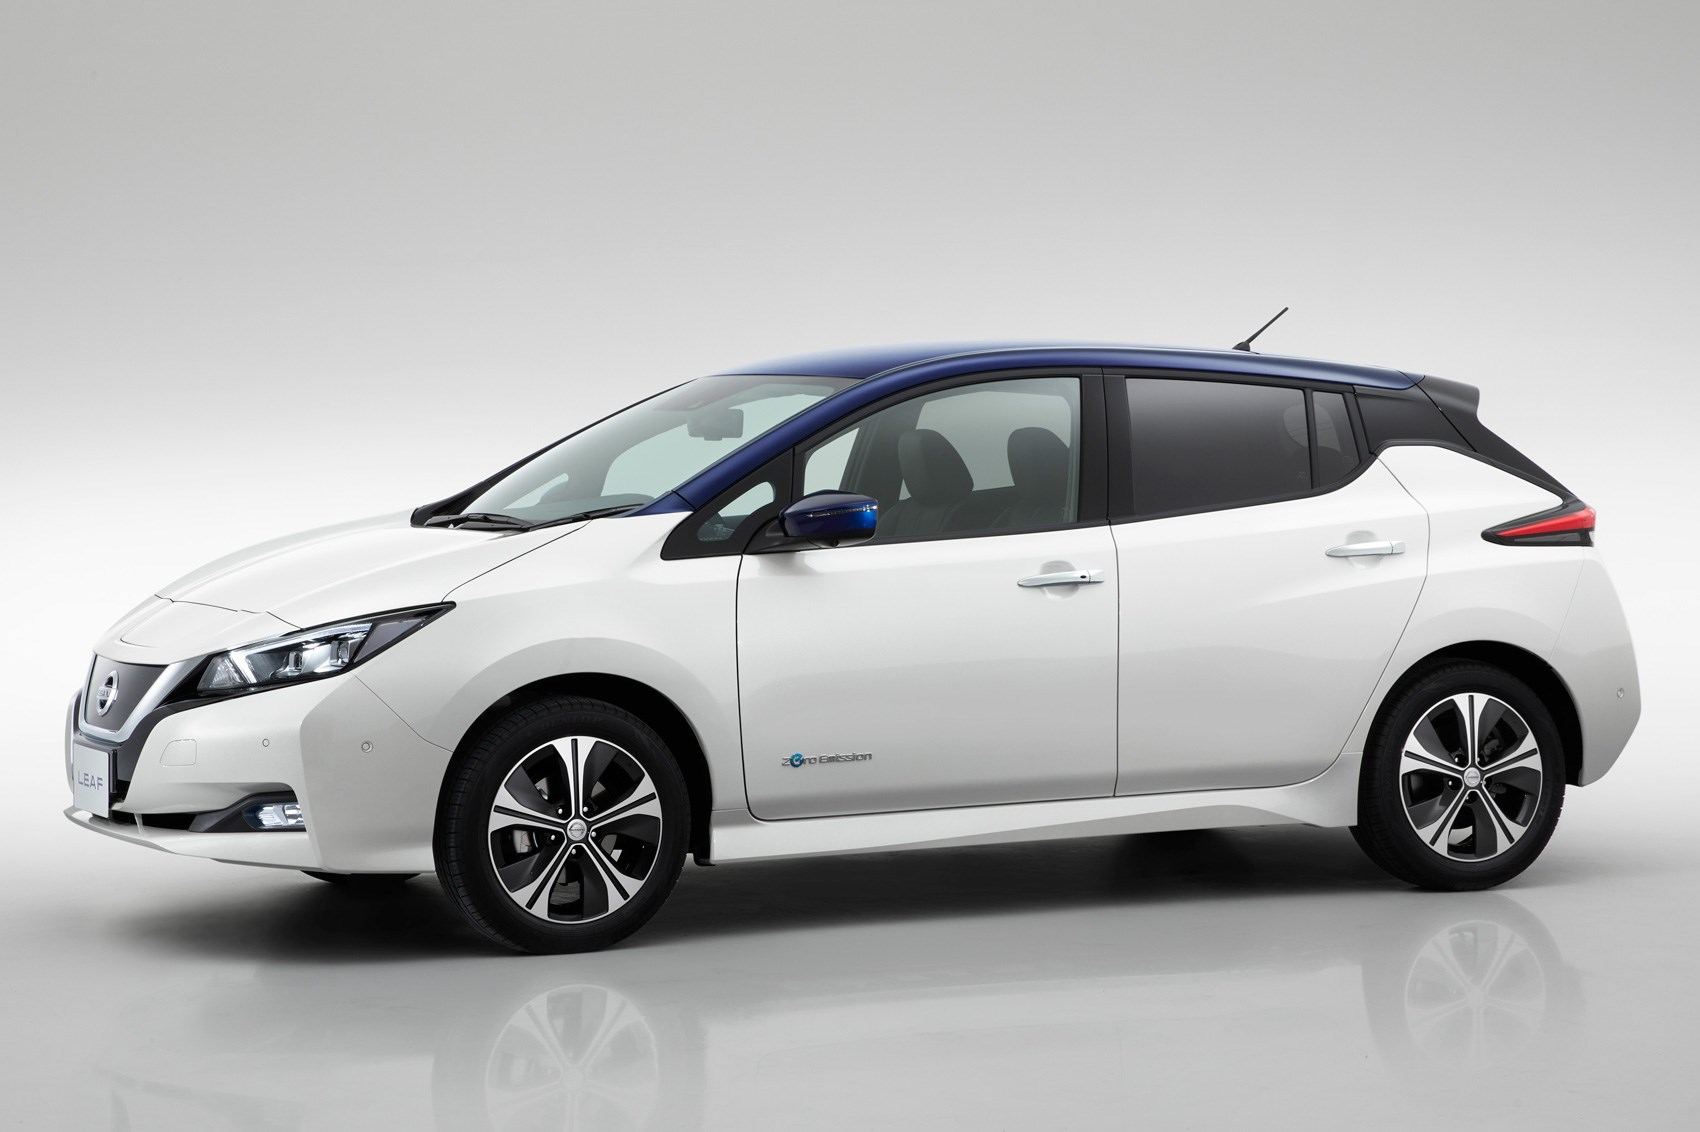 new nissan leaf 2019 model with 200 mile range coming this year by car magazine. Black Bedroom Furniture Sets. Home Design Ideas